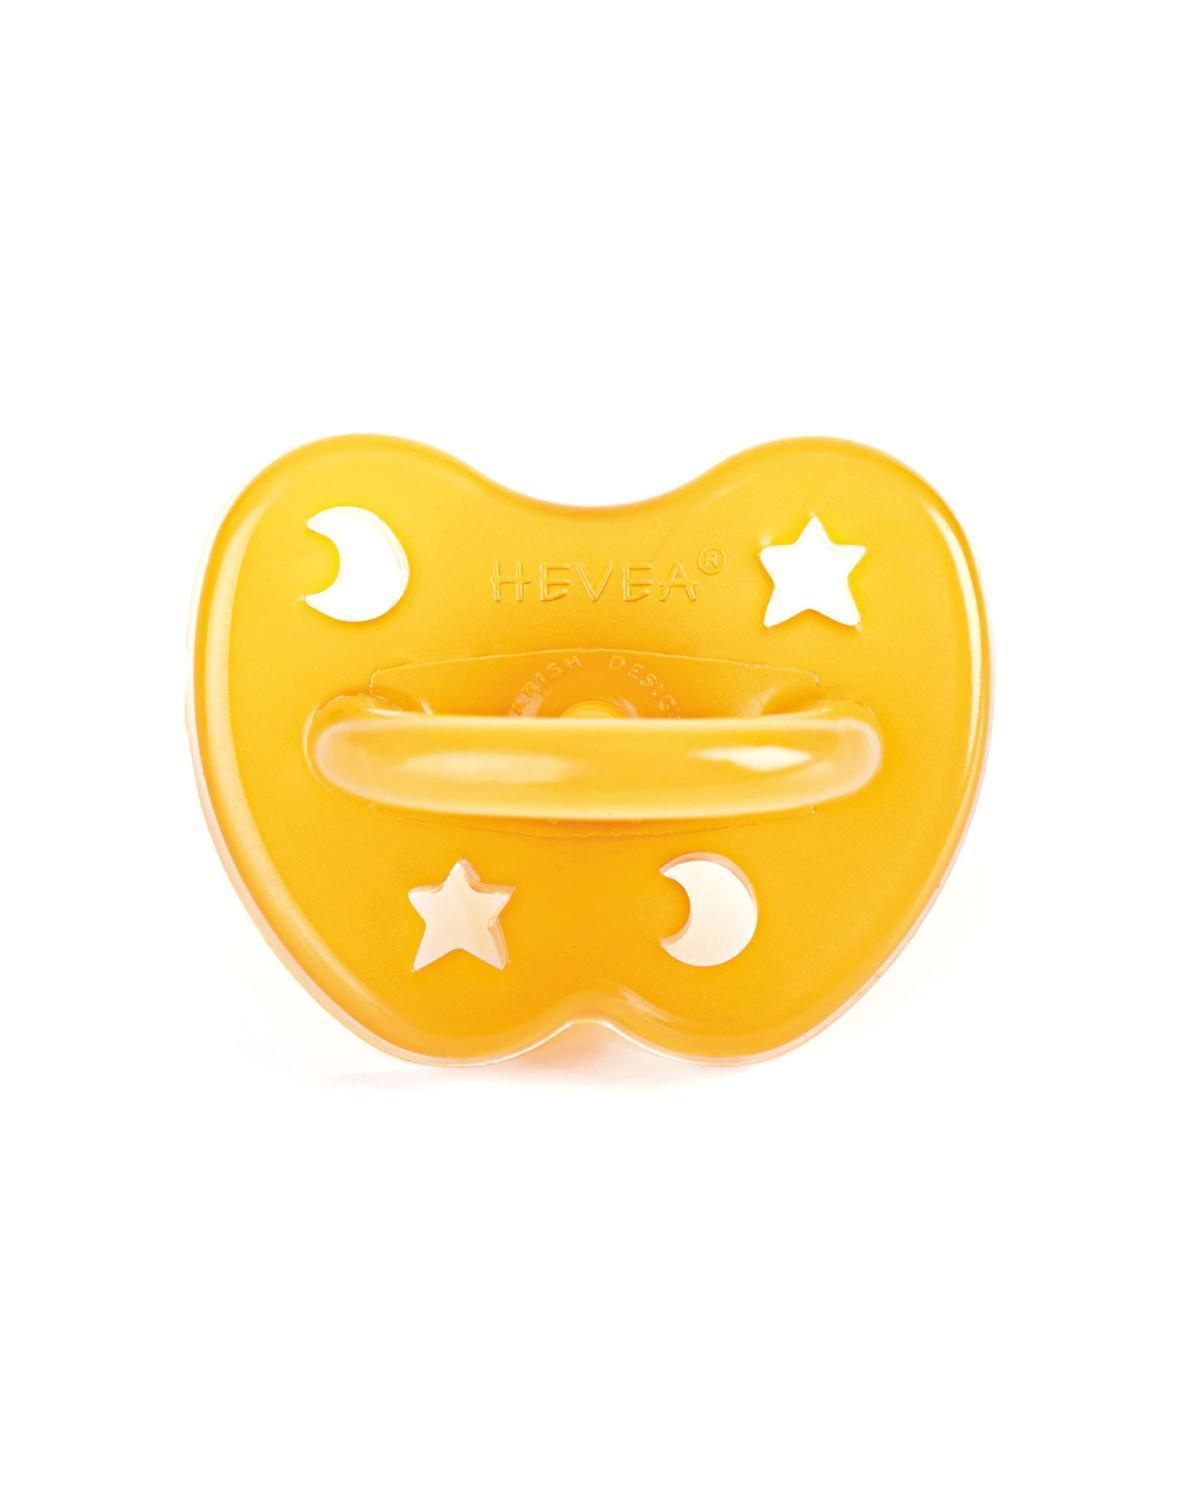 Little hevea planet baby accessories Star + Moon Pacifier